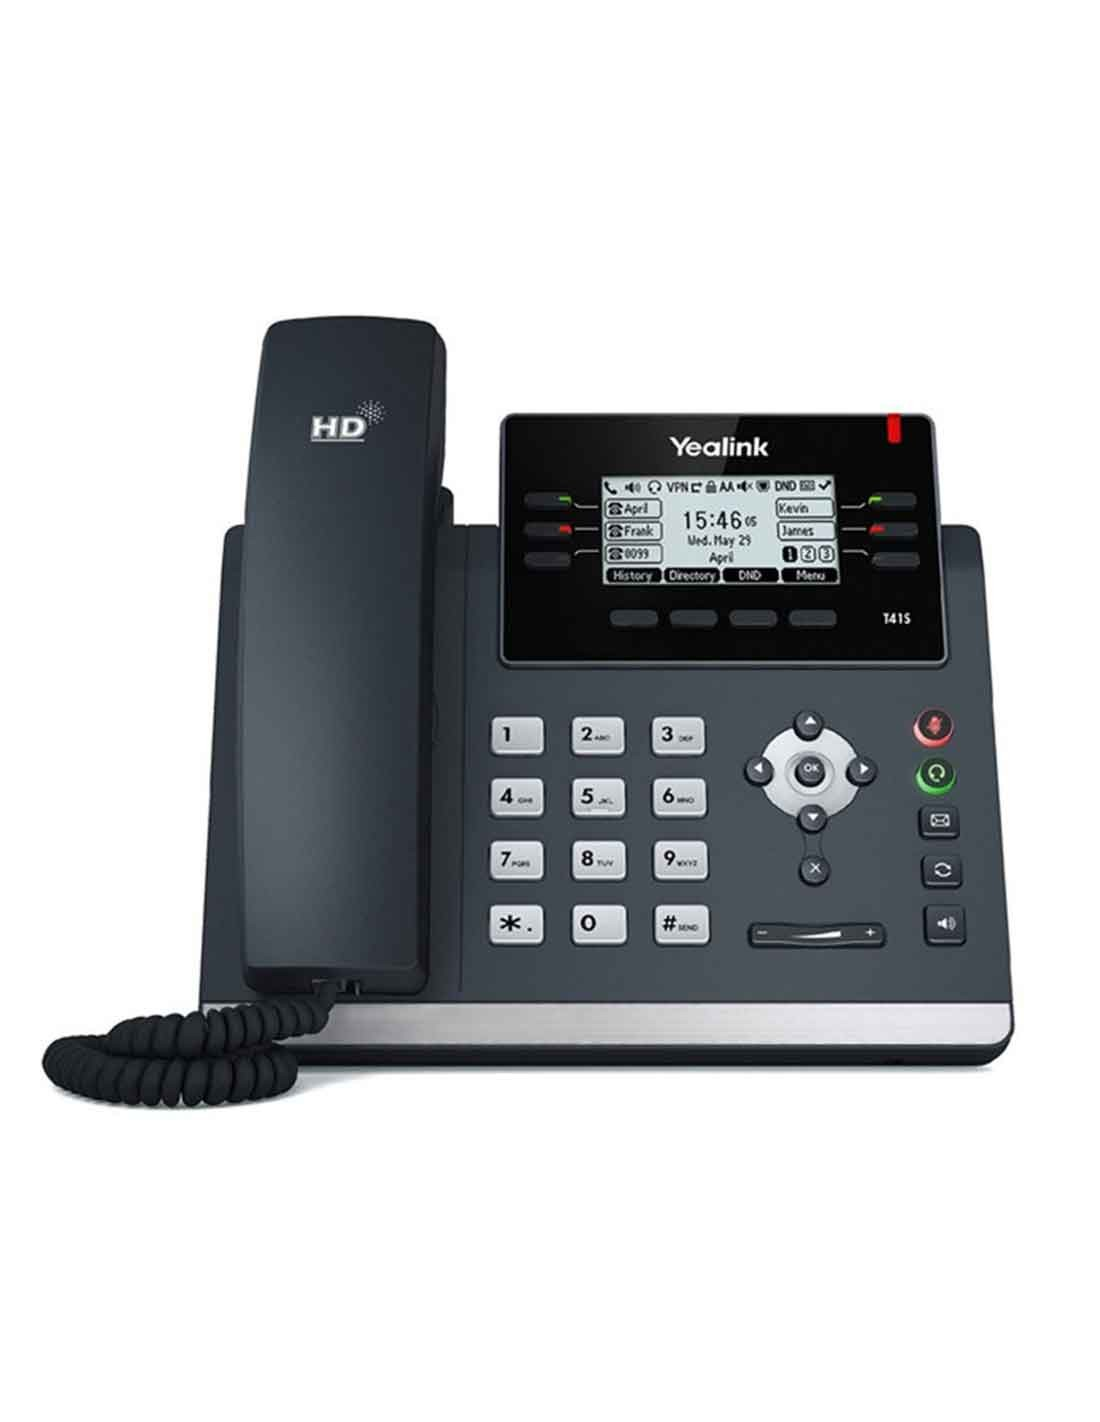 Yealink SIP-T41S IP Phone at a cheap price and free delivery in Dubai